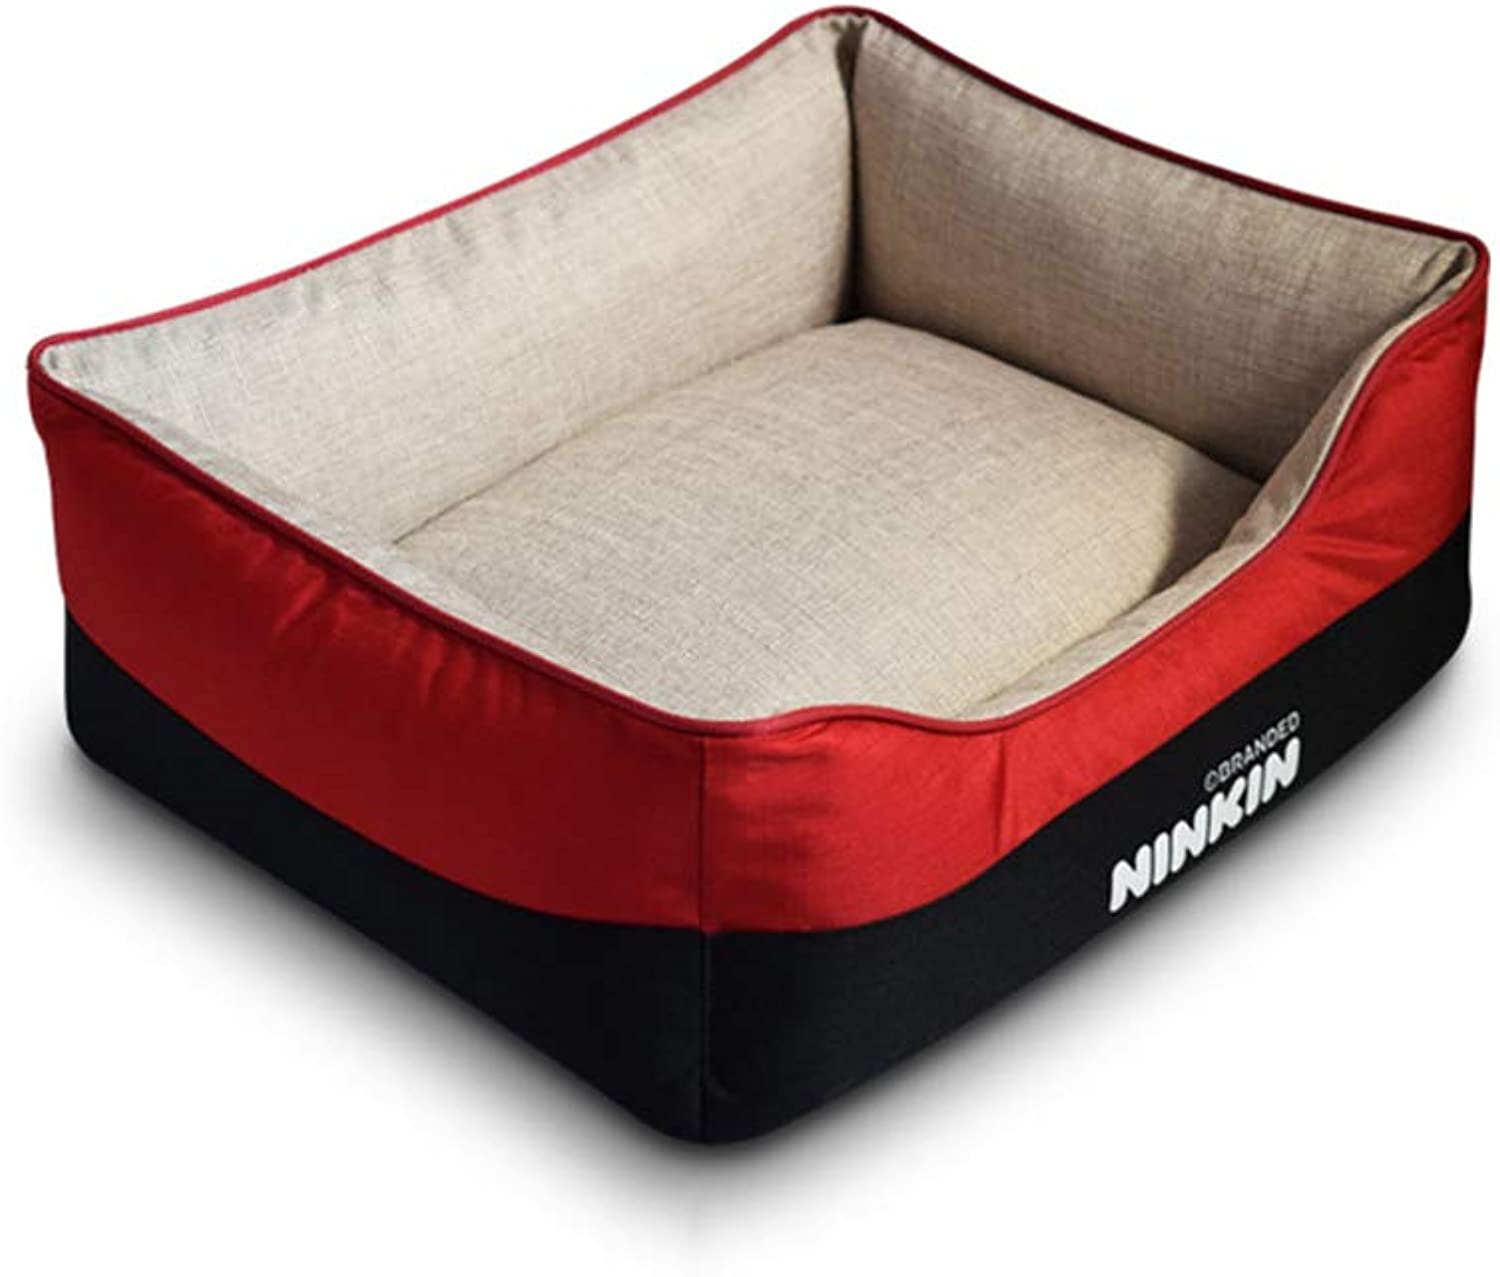 Dog Basket Bed Cushion Washable Durable Linen Inside Full Filling Comfortable Inner Cushion Four Seasons Universal (color   Khaki and red, Size   XL)